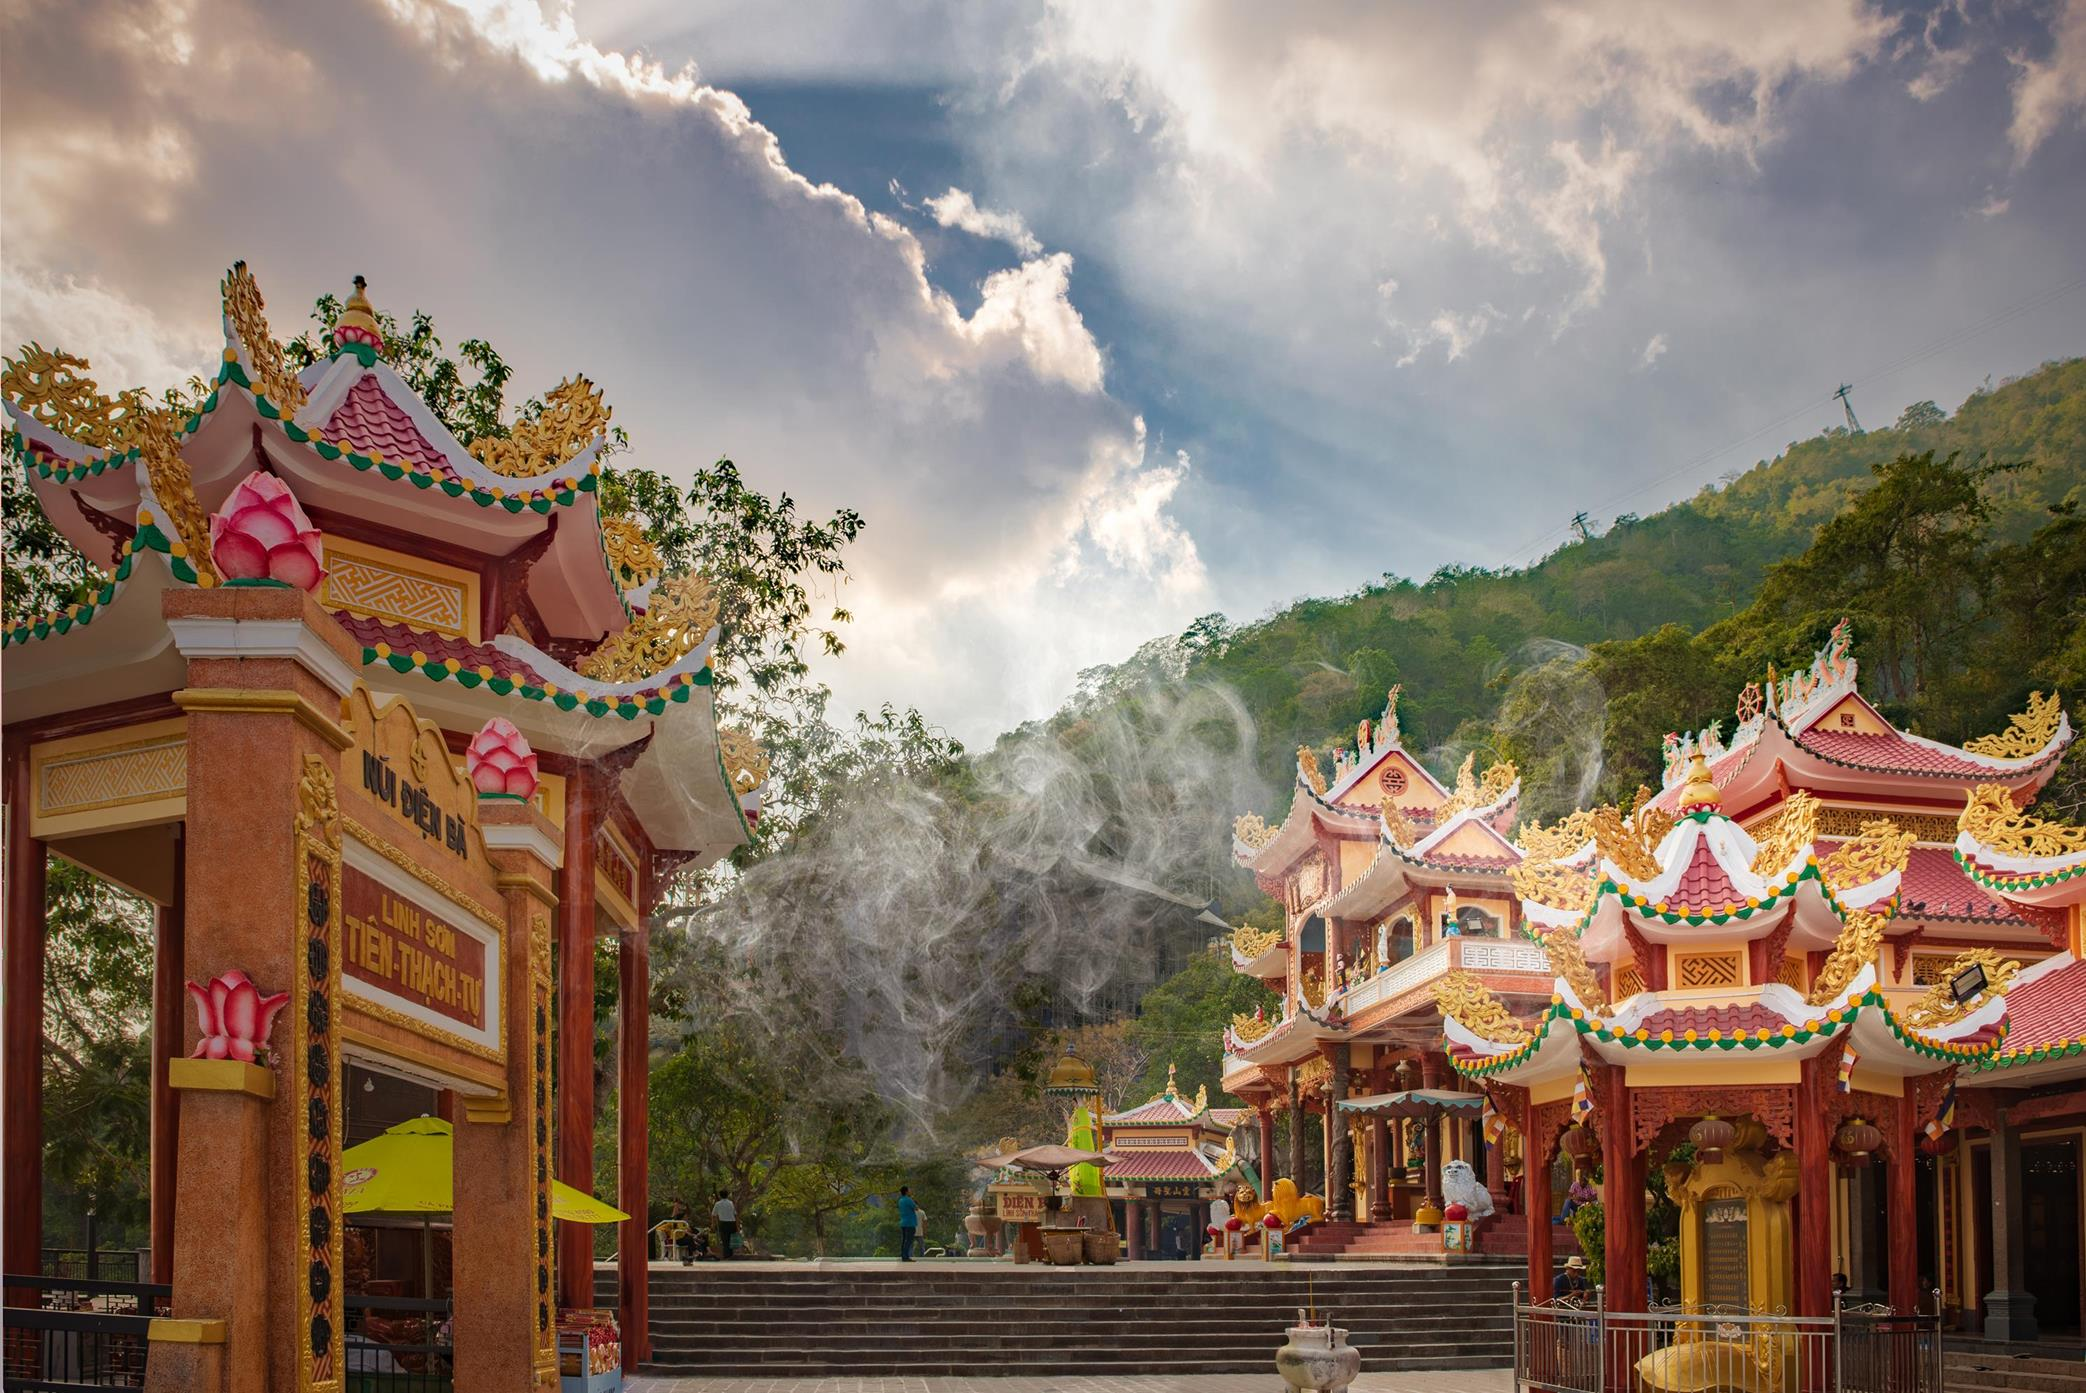 Admire the sacred temple complex on Ba Den mountain